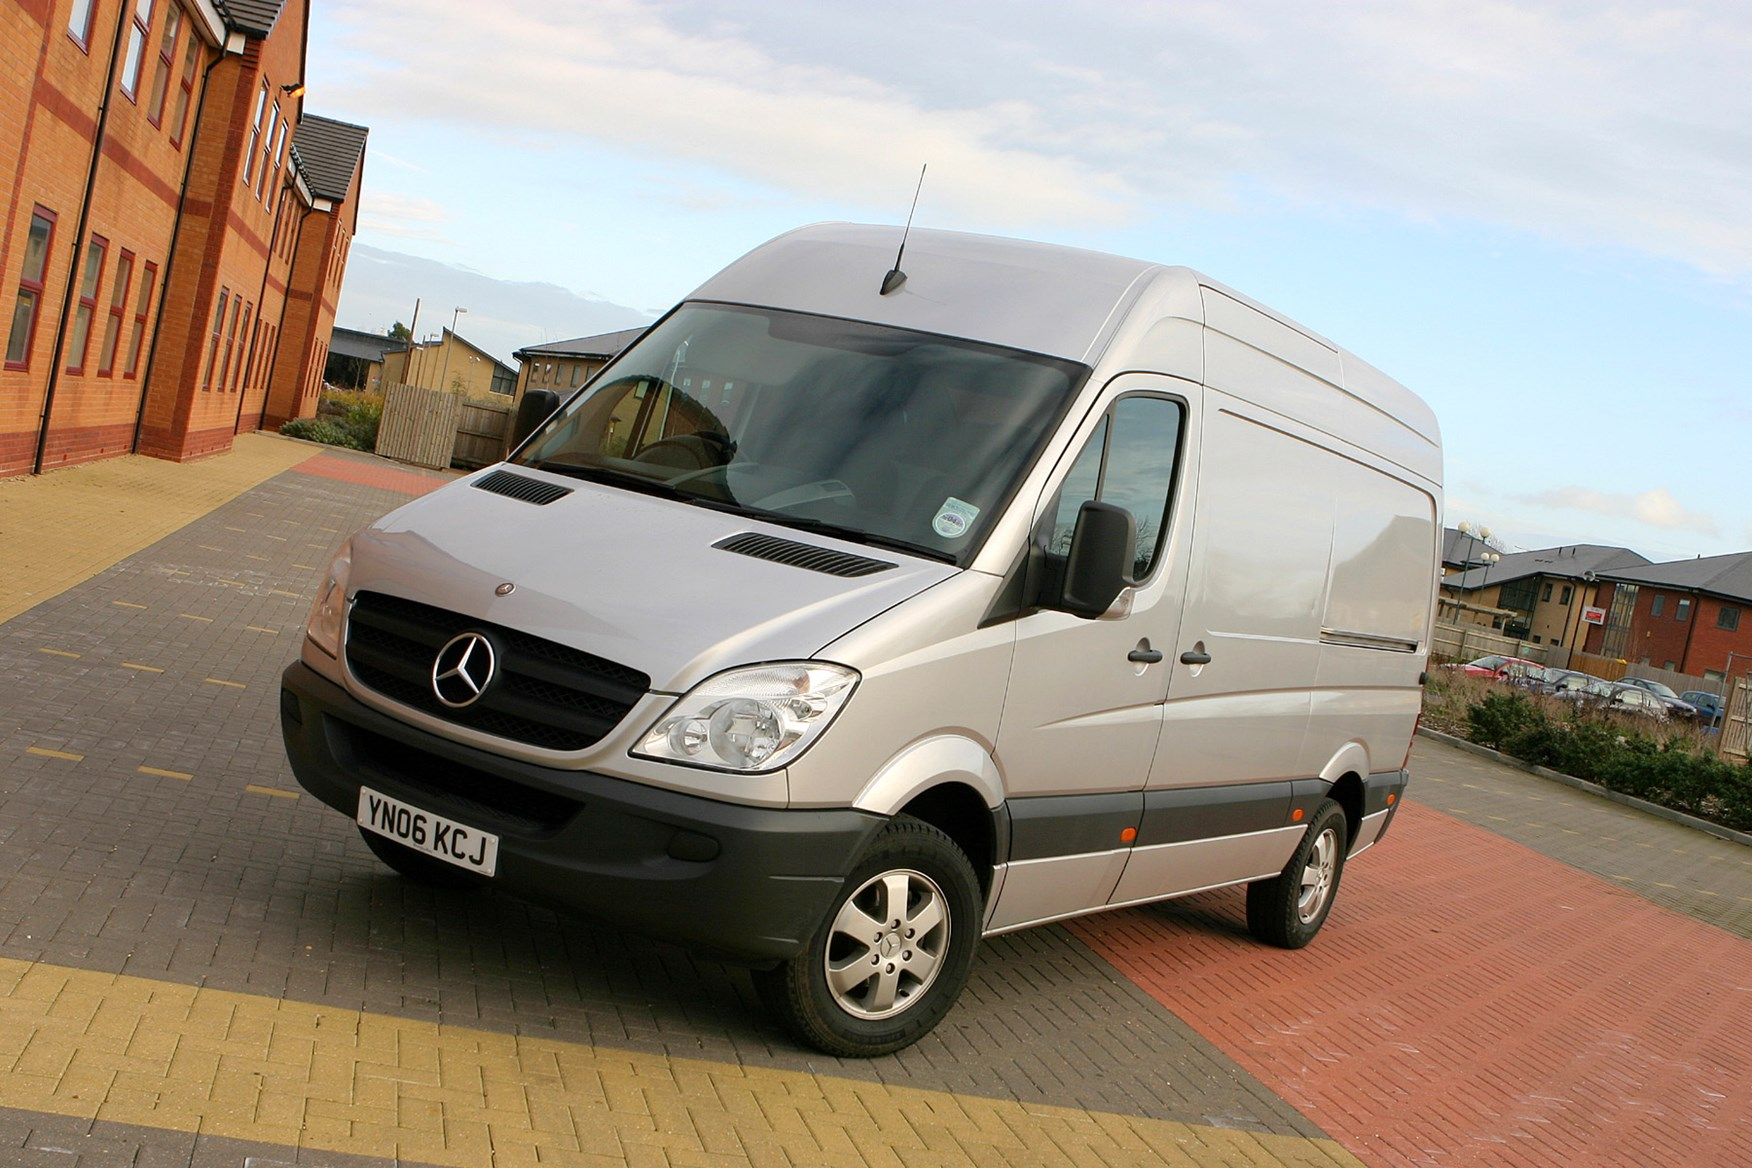 6046e4e3e4d6 Mercedes-Benz Sprinter 2006-2013 review on Parkers Vans - front exterior